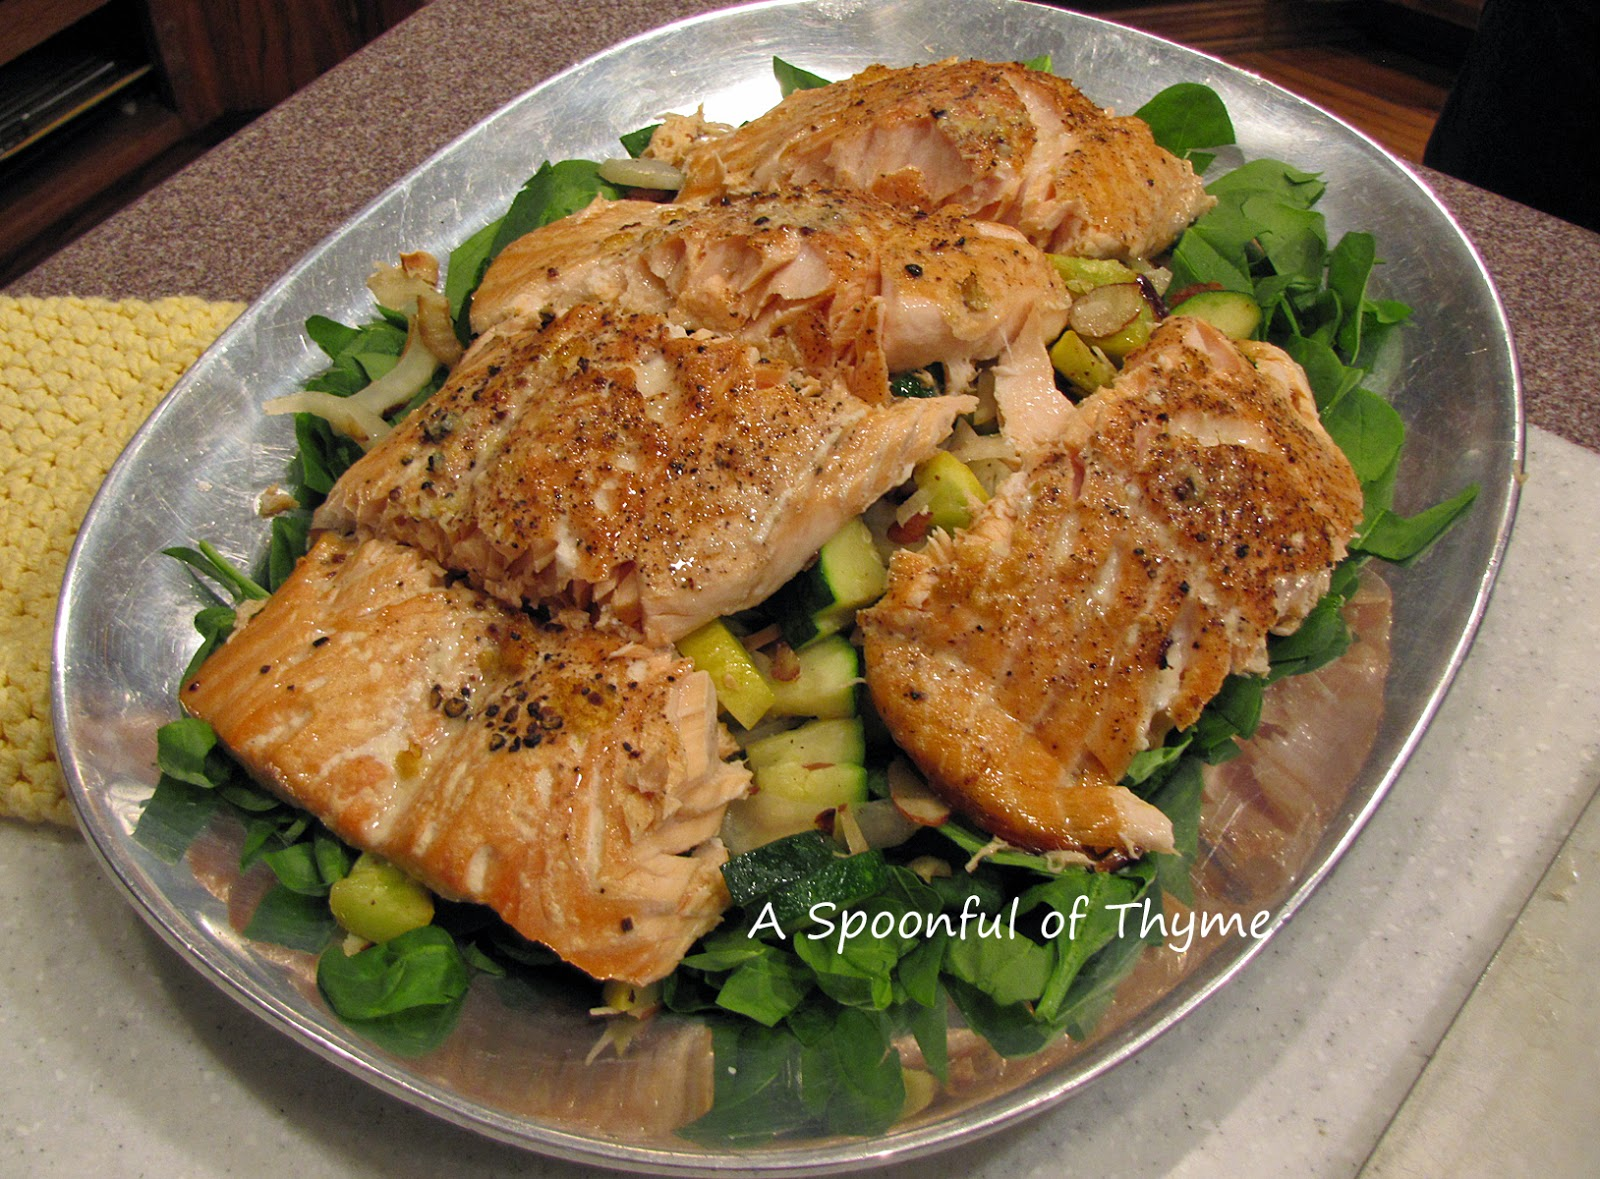 ... salmon fillet on top of the salad and warm vegetables. The salad can